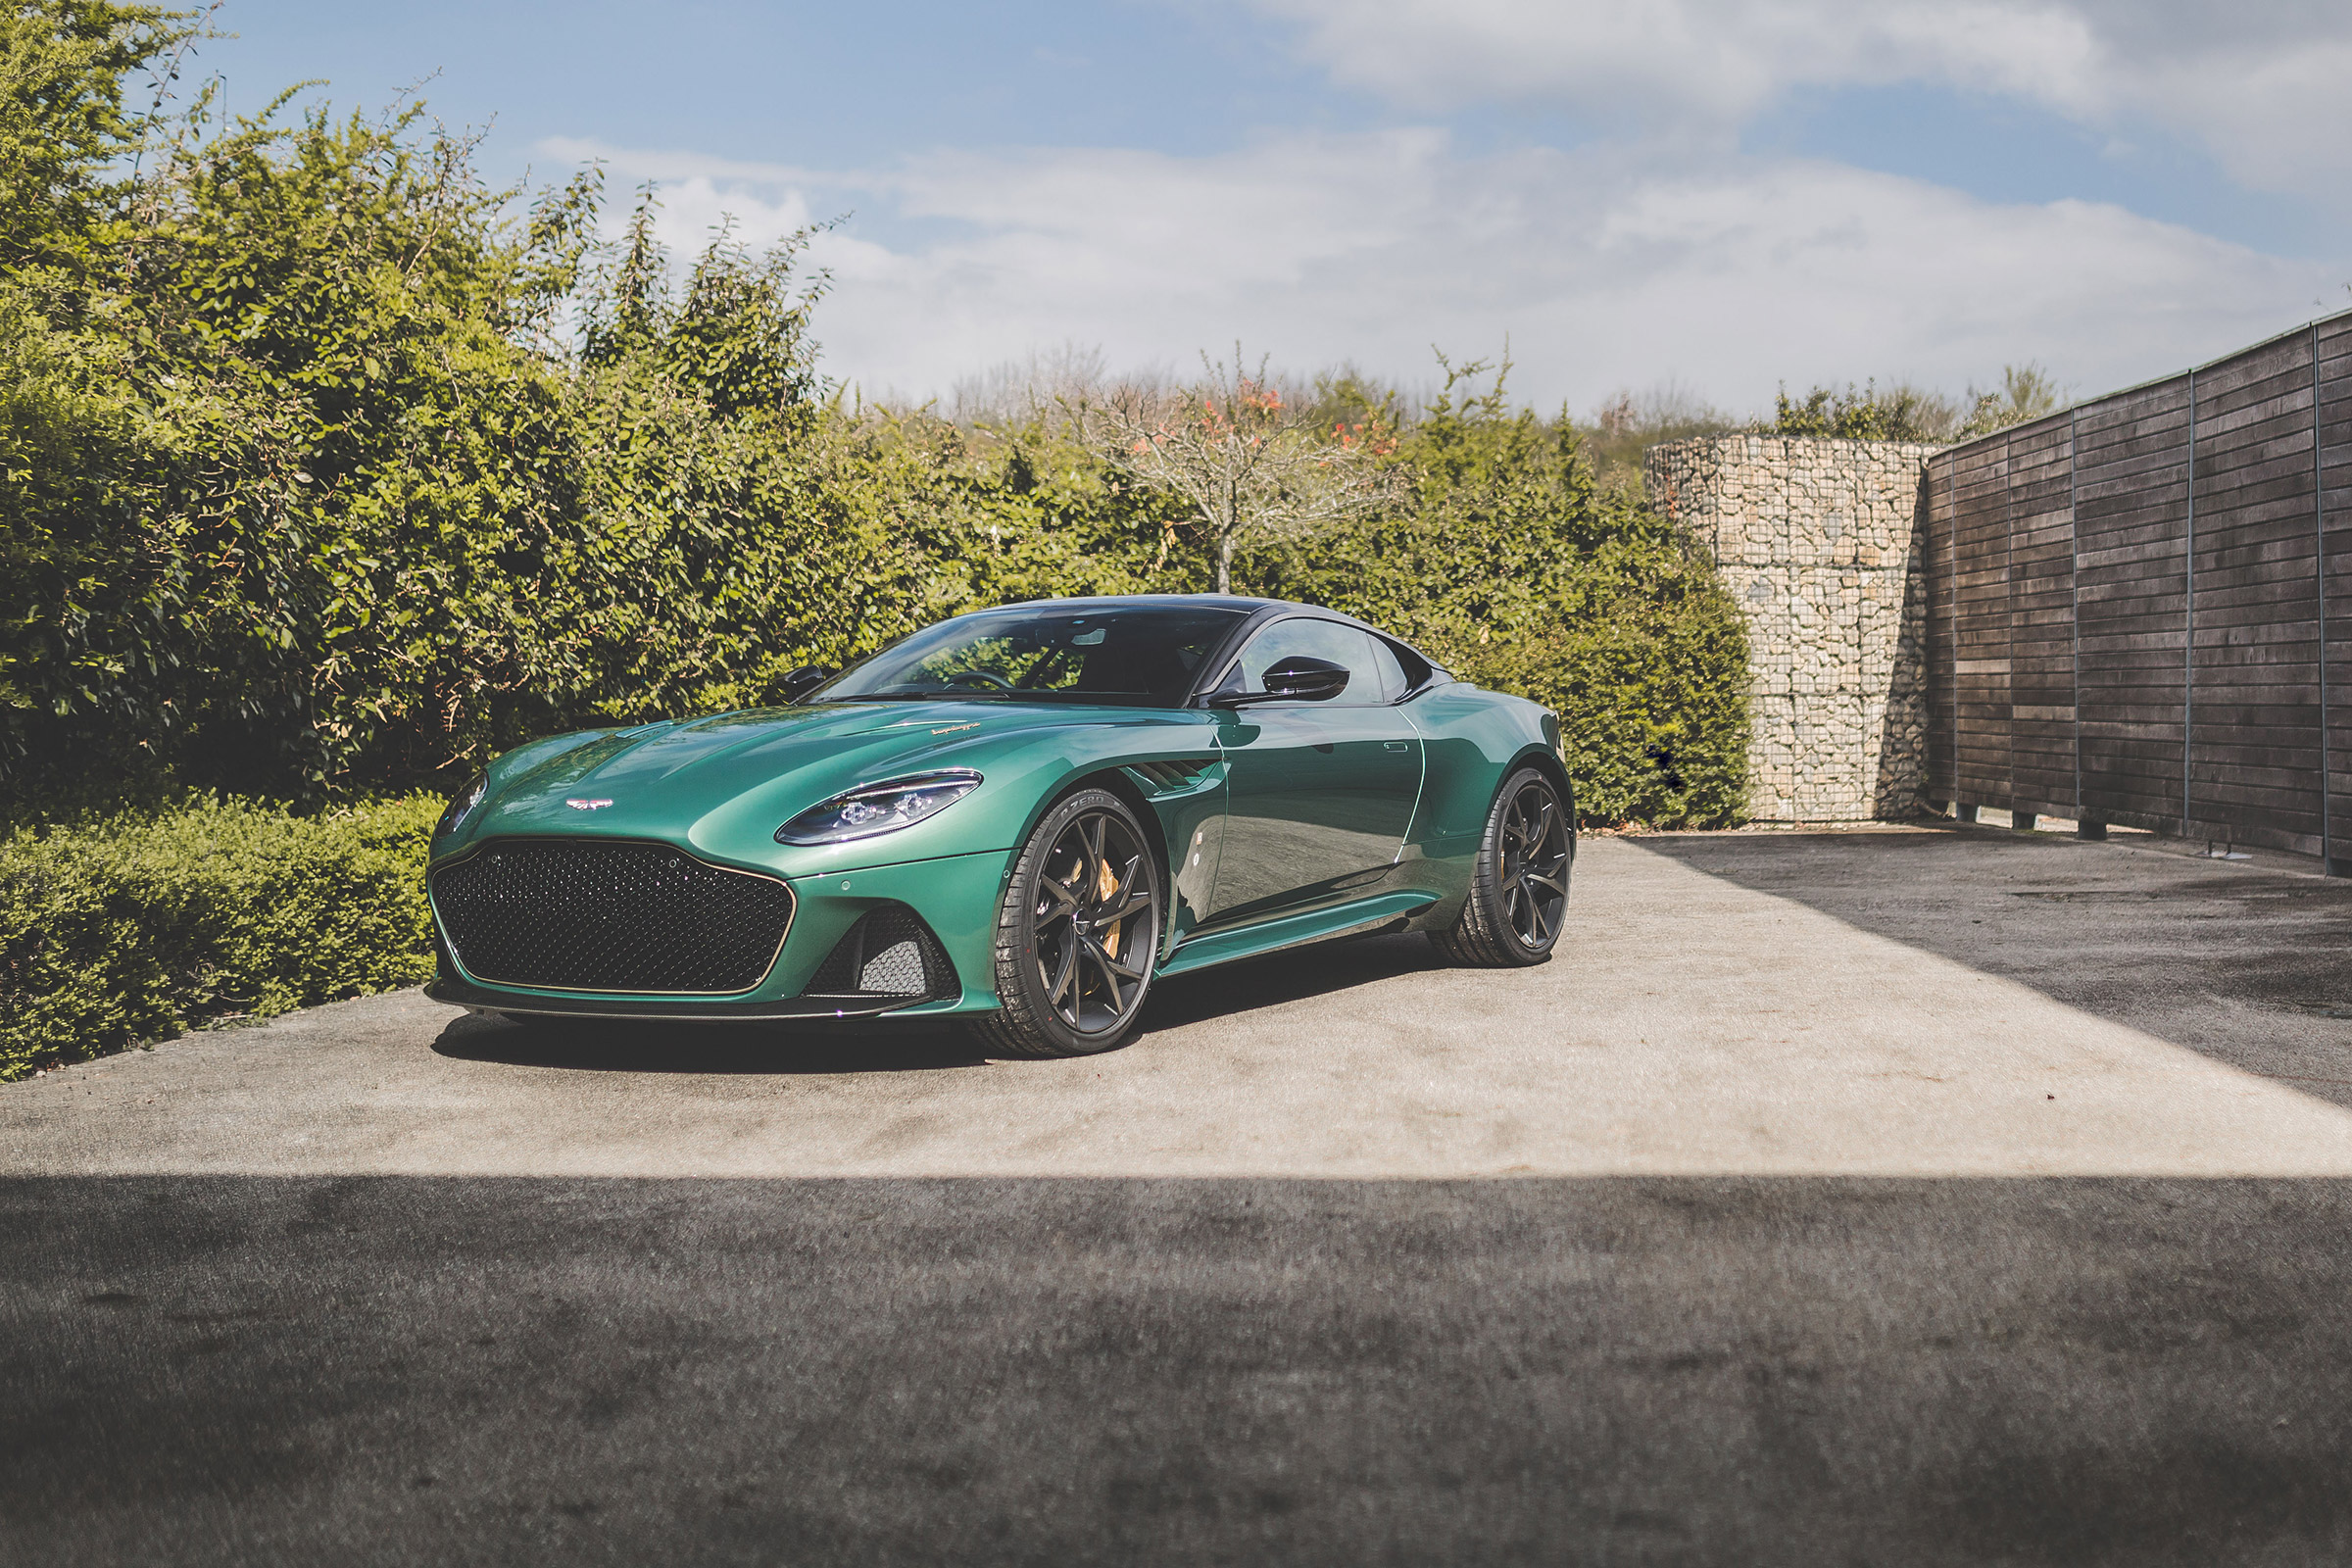 Aston Martin Dbs 59 With Bespoke Styling Elements From Q